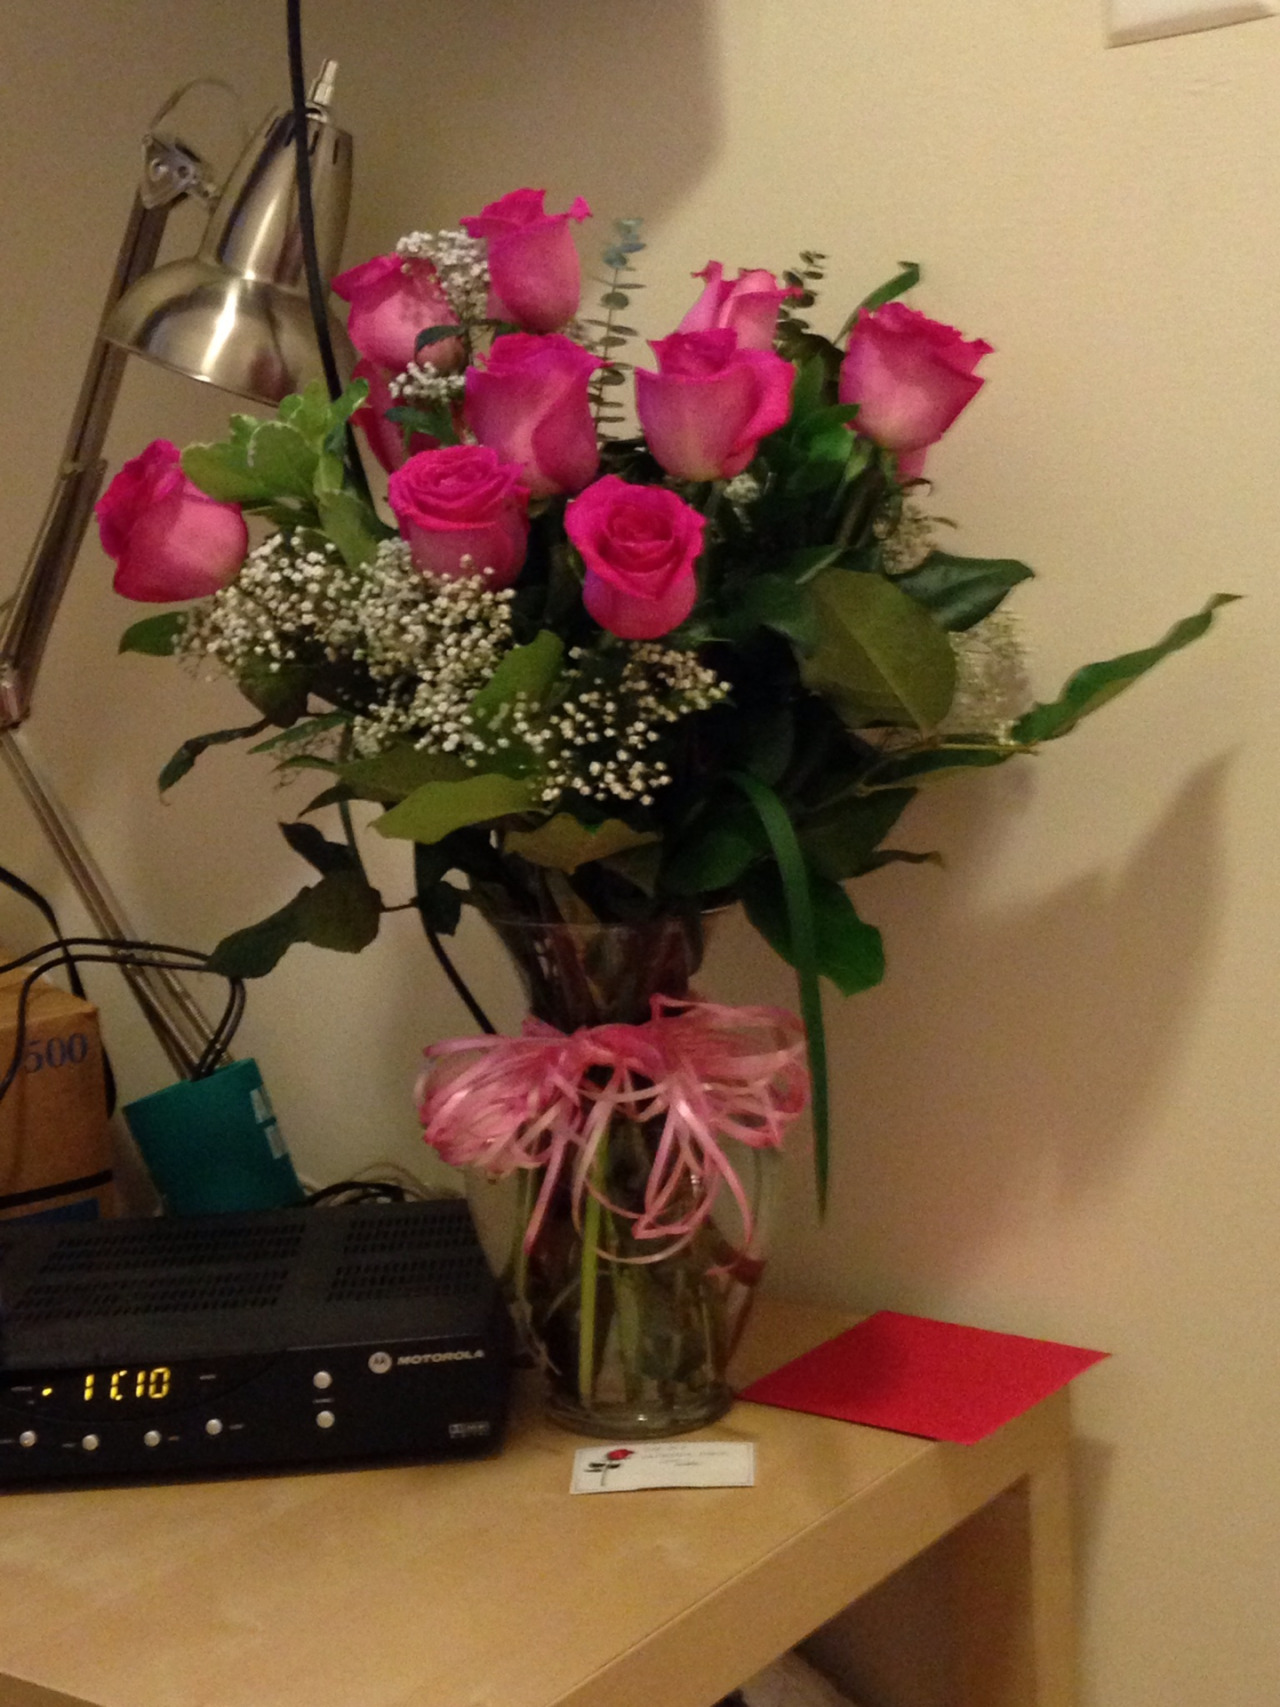 Beautiful roses from the wonderful boyfriend. He planned ahead and didn't want me to have to carry them to dinner on Valentines day and so that I could enjoy them all week. I love having a boyfriend that plans!